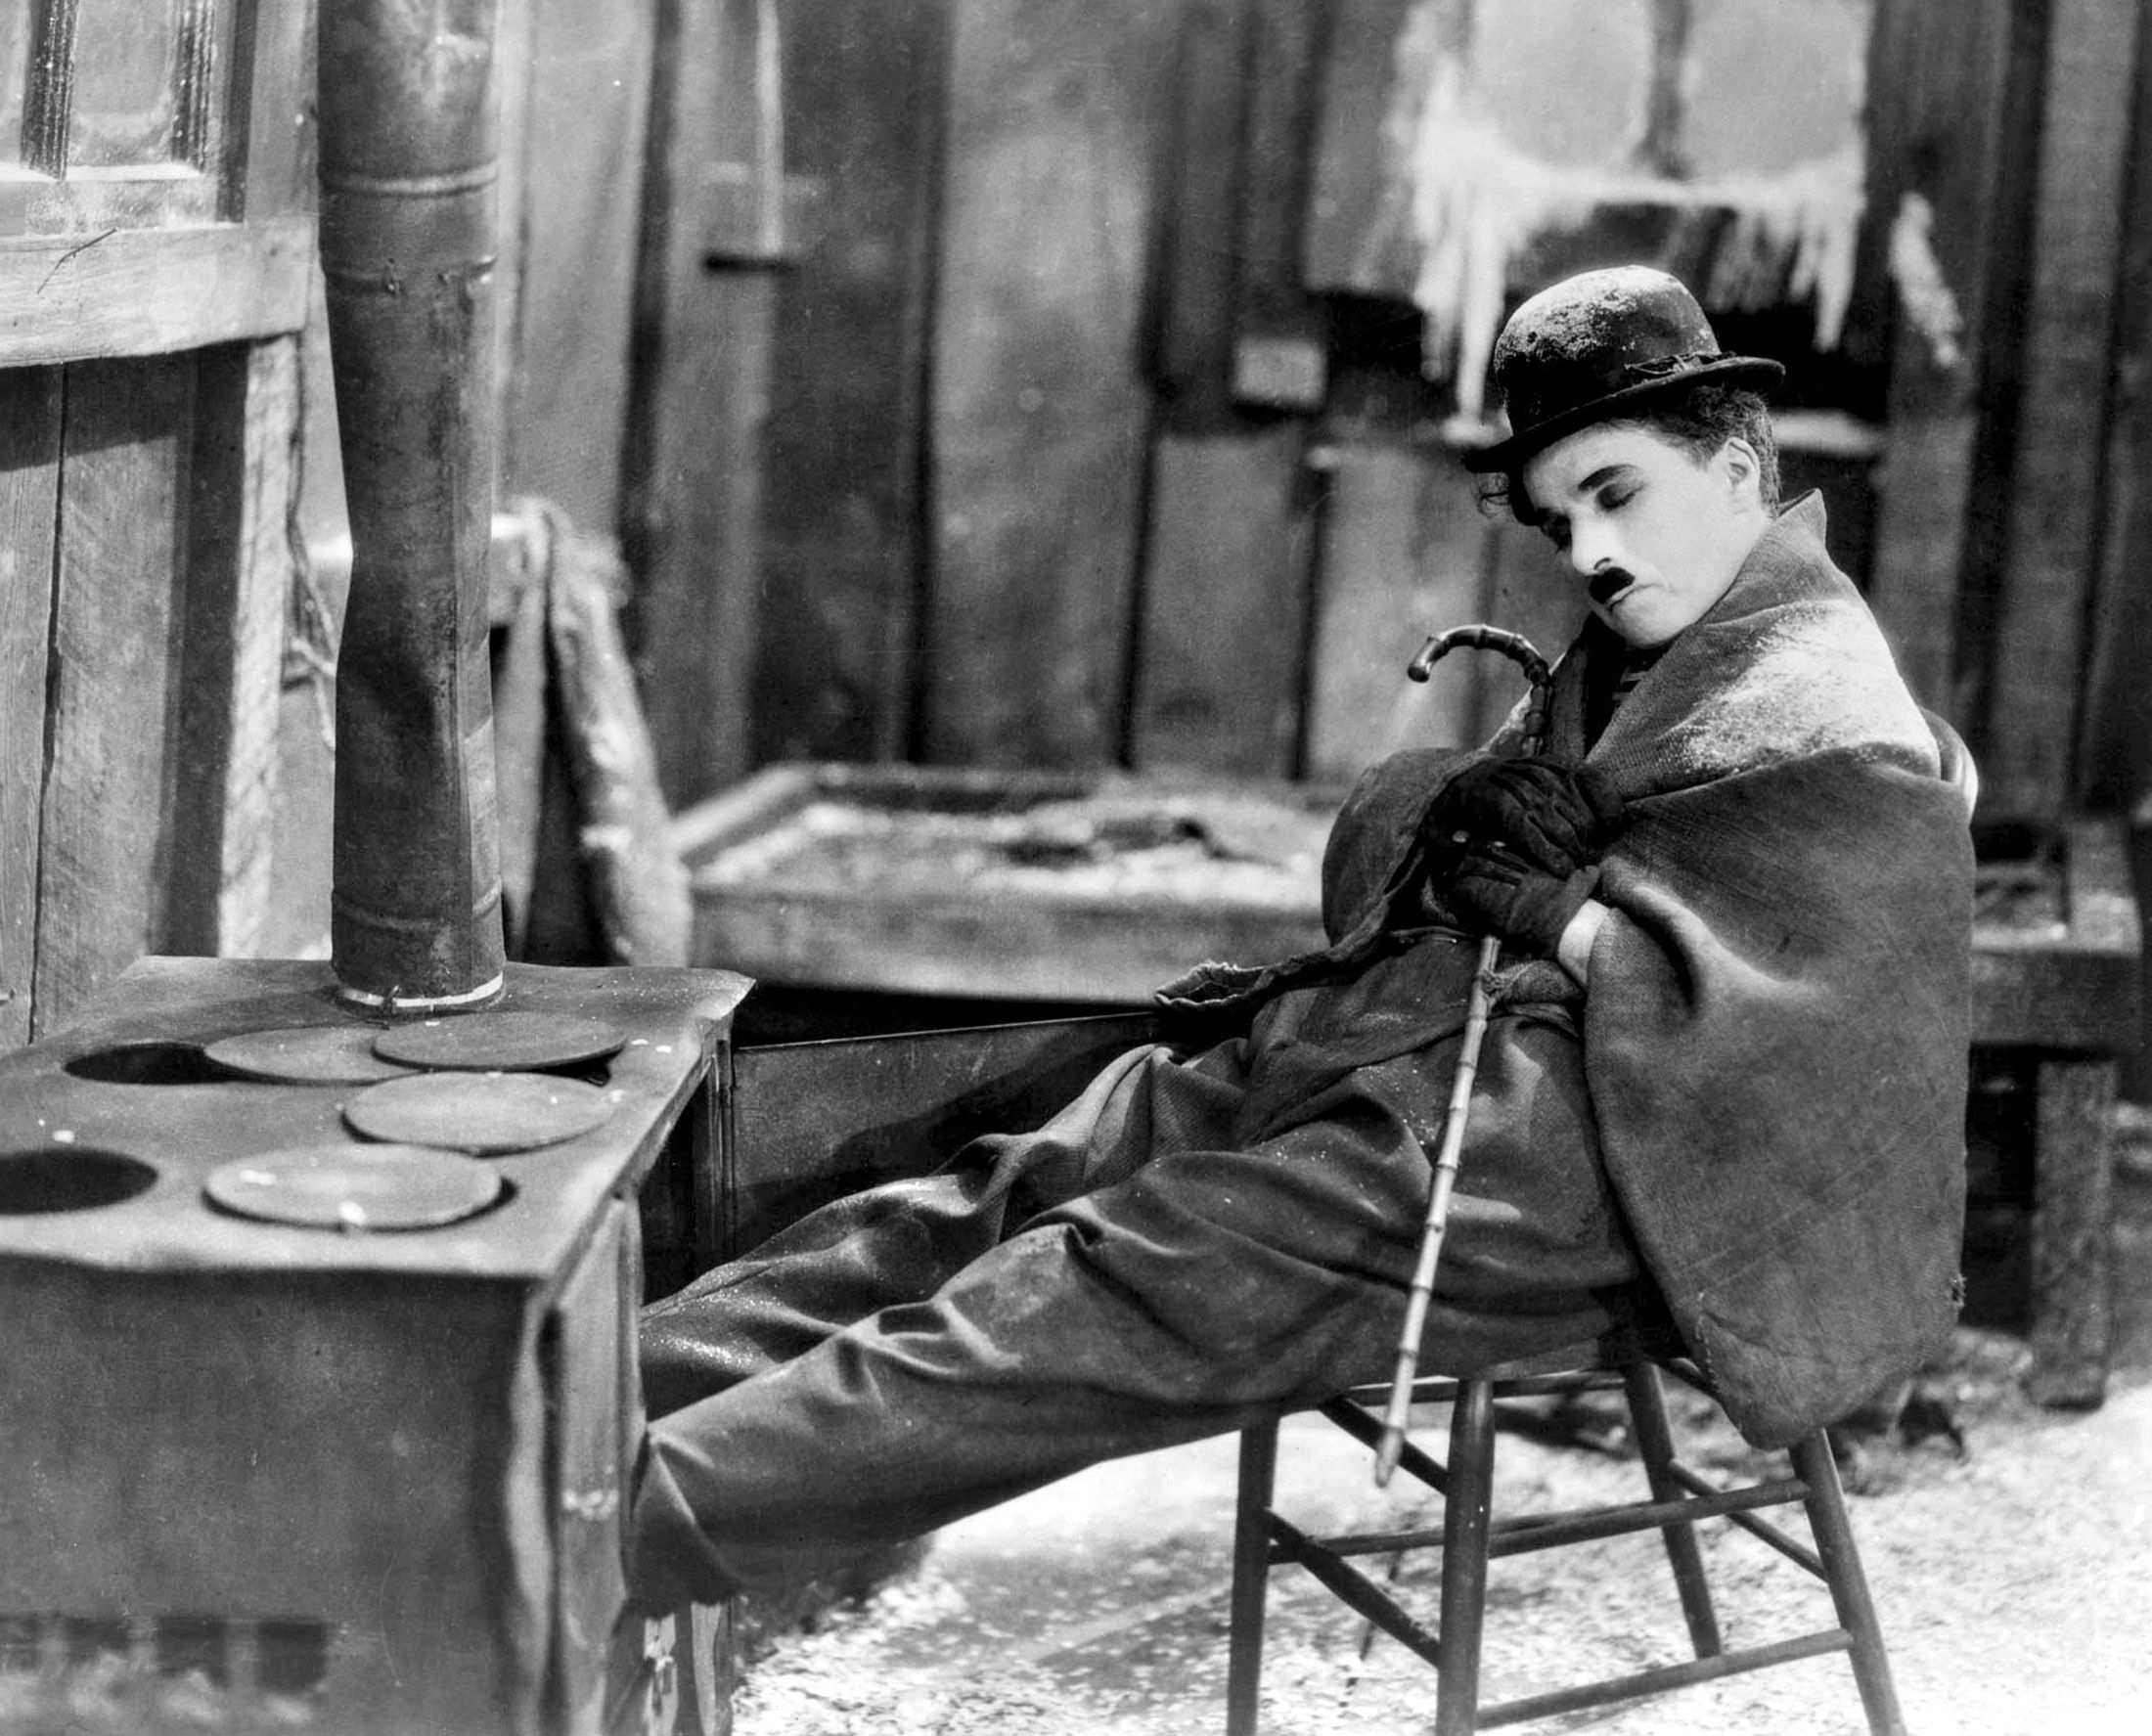 Film - Charlie Chaplin - 1925 - Gold Rush - Corsa all'Oro - scene stufa